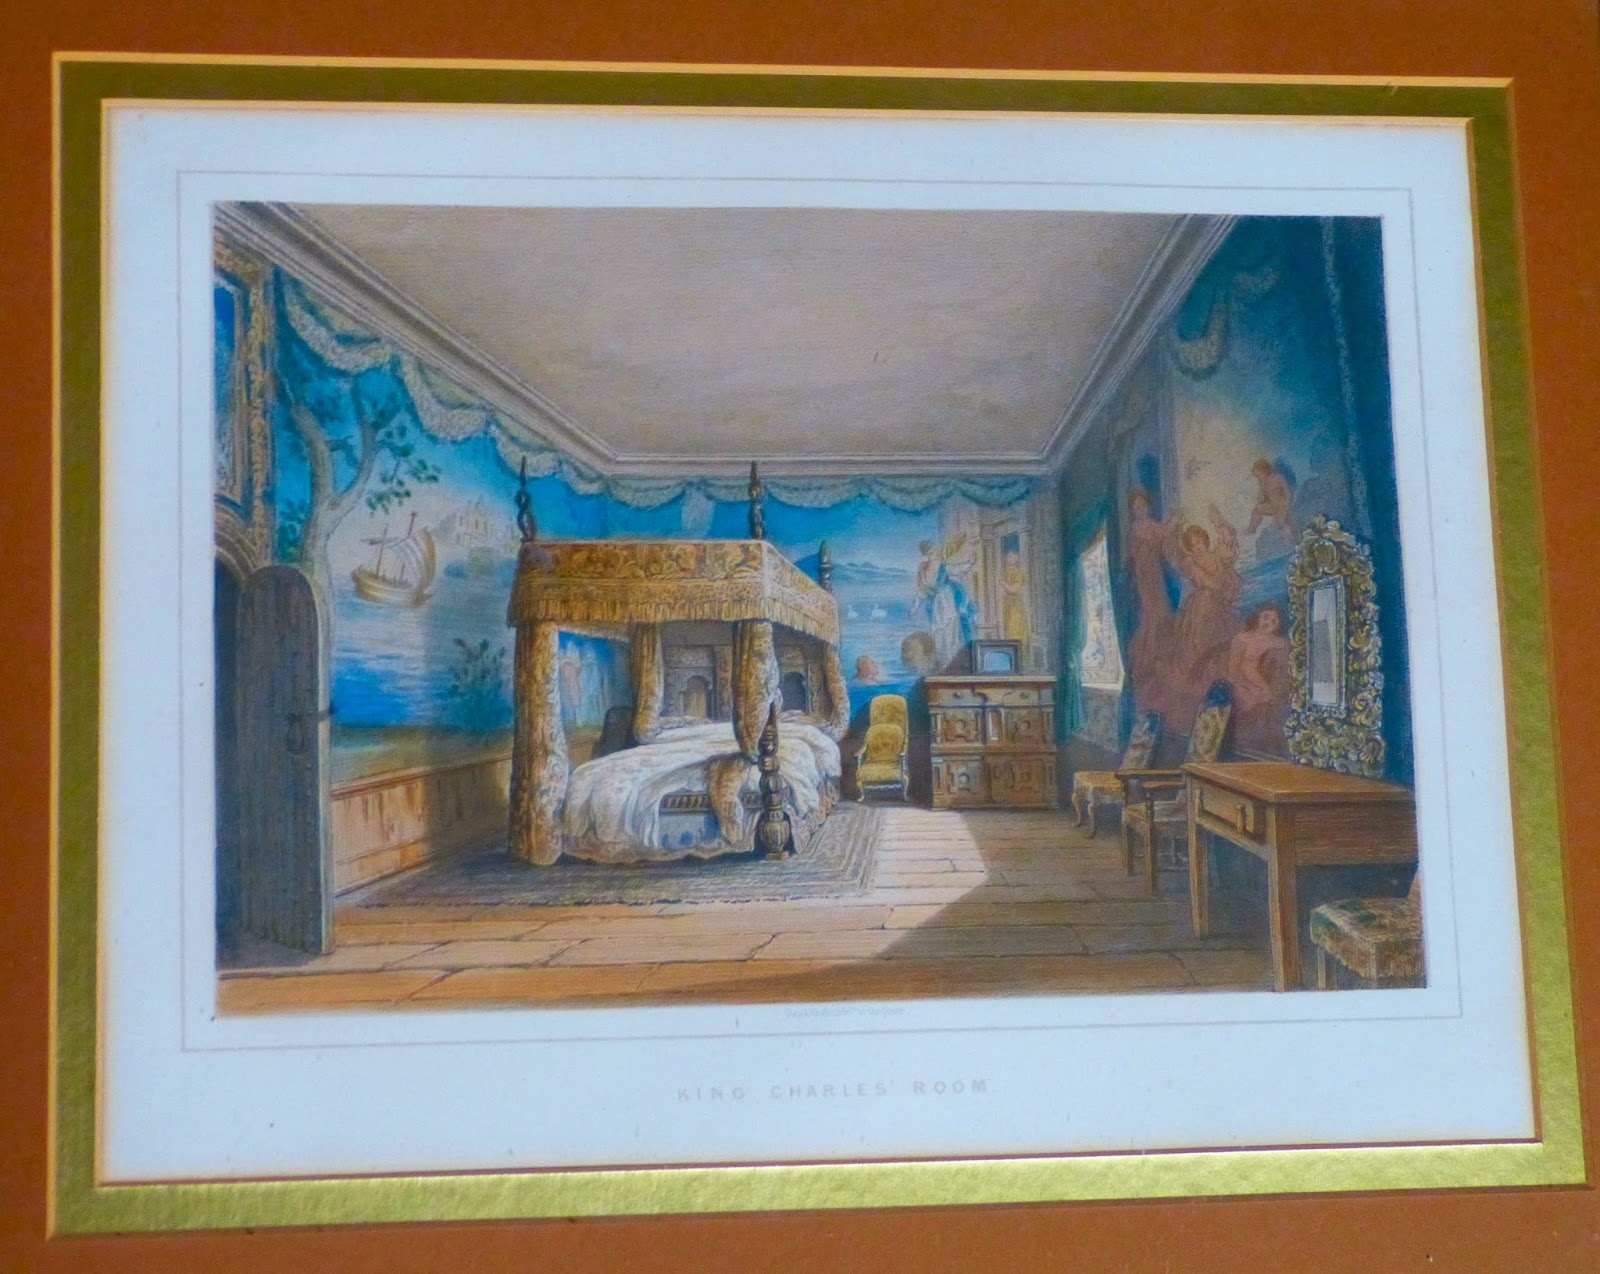 King Charles' Room - after print by Nicholas Condy (c1840)